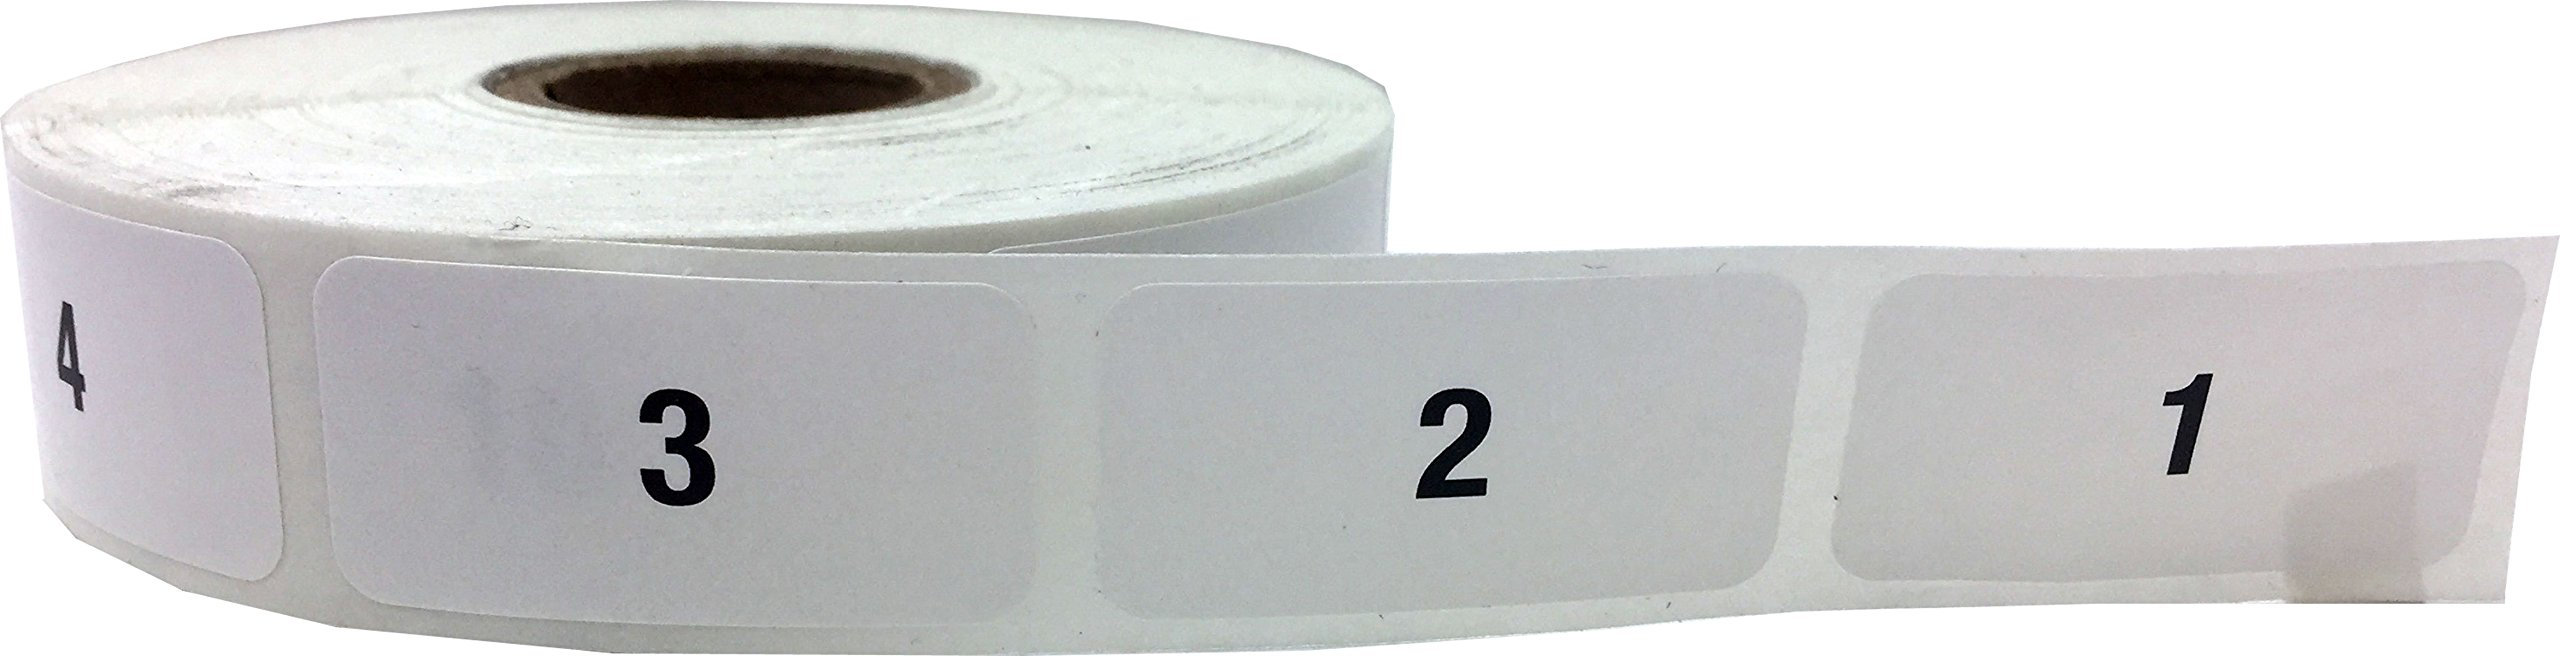 Consecutive Number Labels Bulk Pack Numbers 1 Through 10,000 White/Black .75 x 1.5 Rectangle Small Number Stickers For Inventory by InStockLabels.com (Image #3)